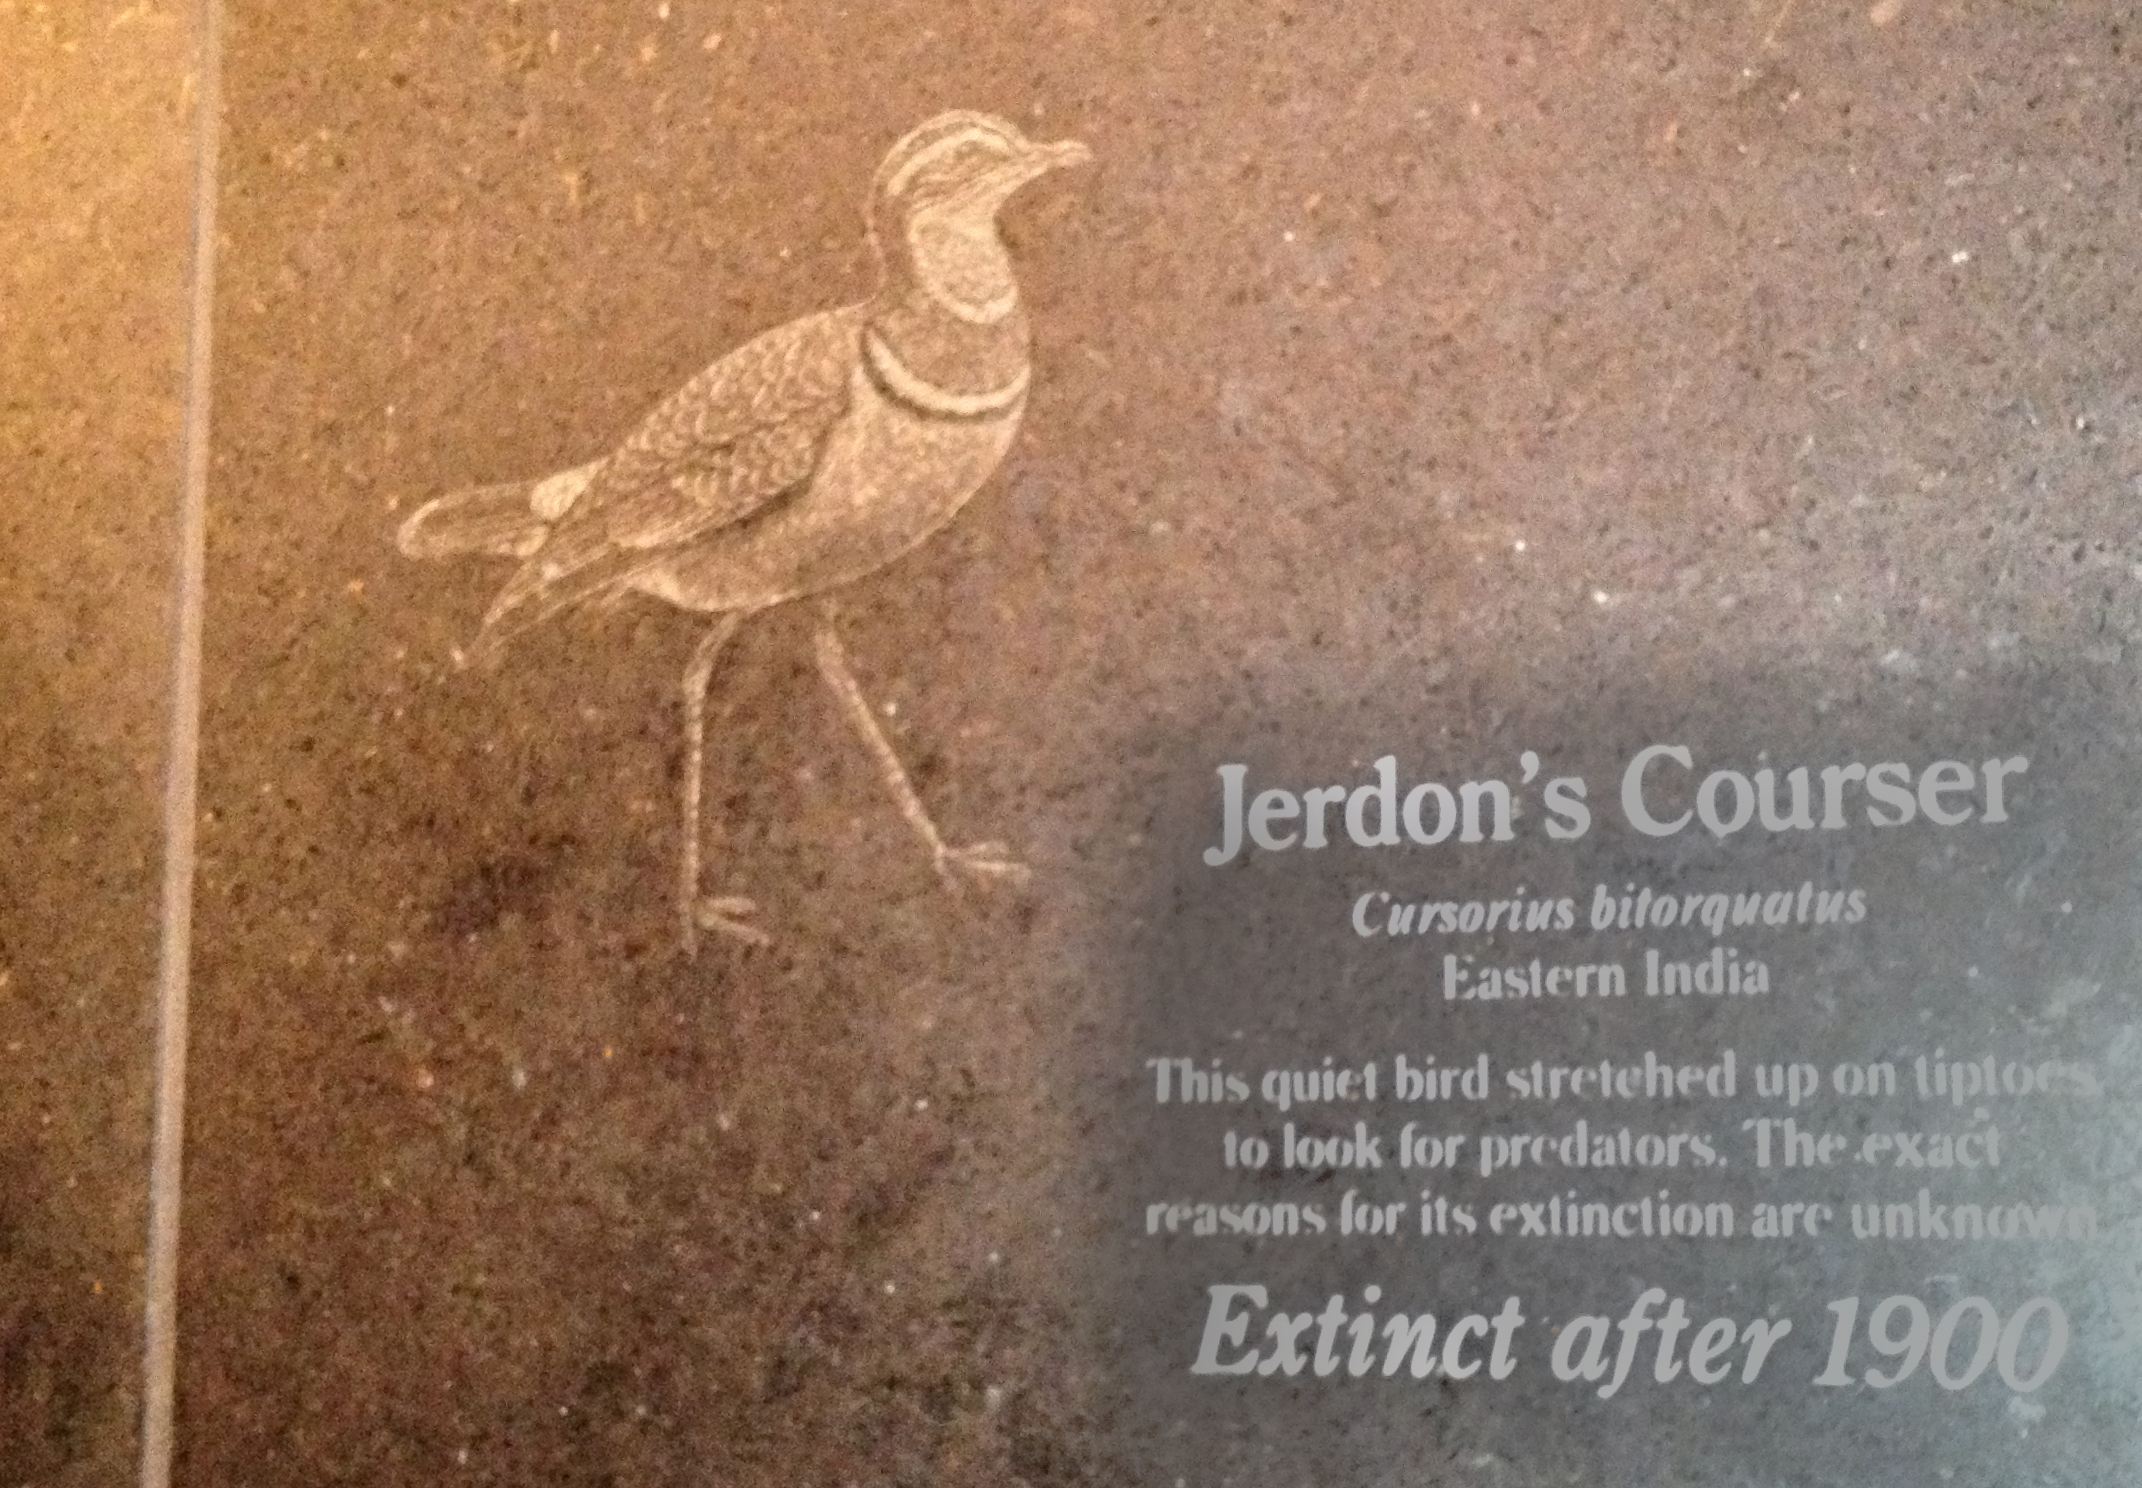 1488 meaning - File Bronx Zoo Jerdon S Courser Plank Jpg